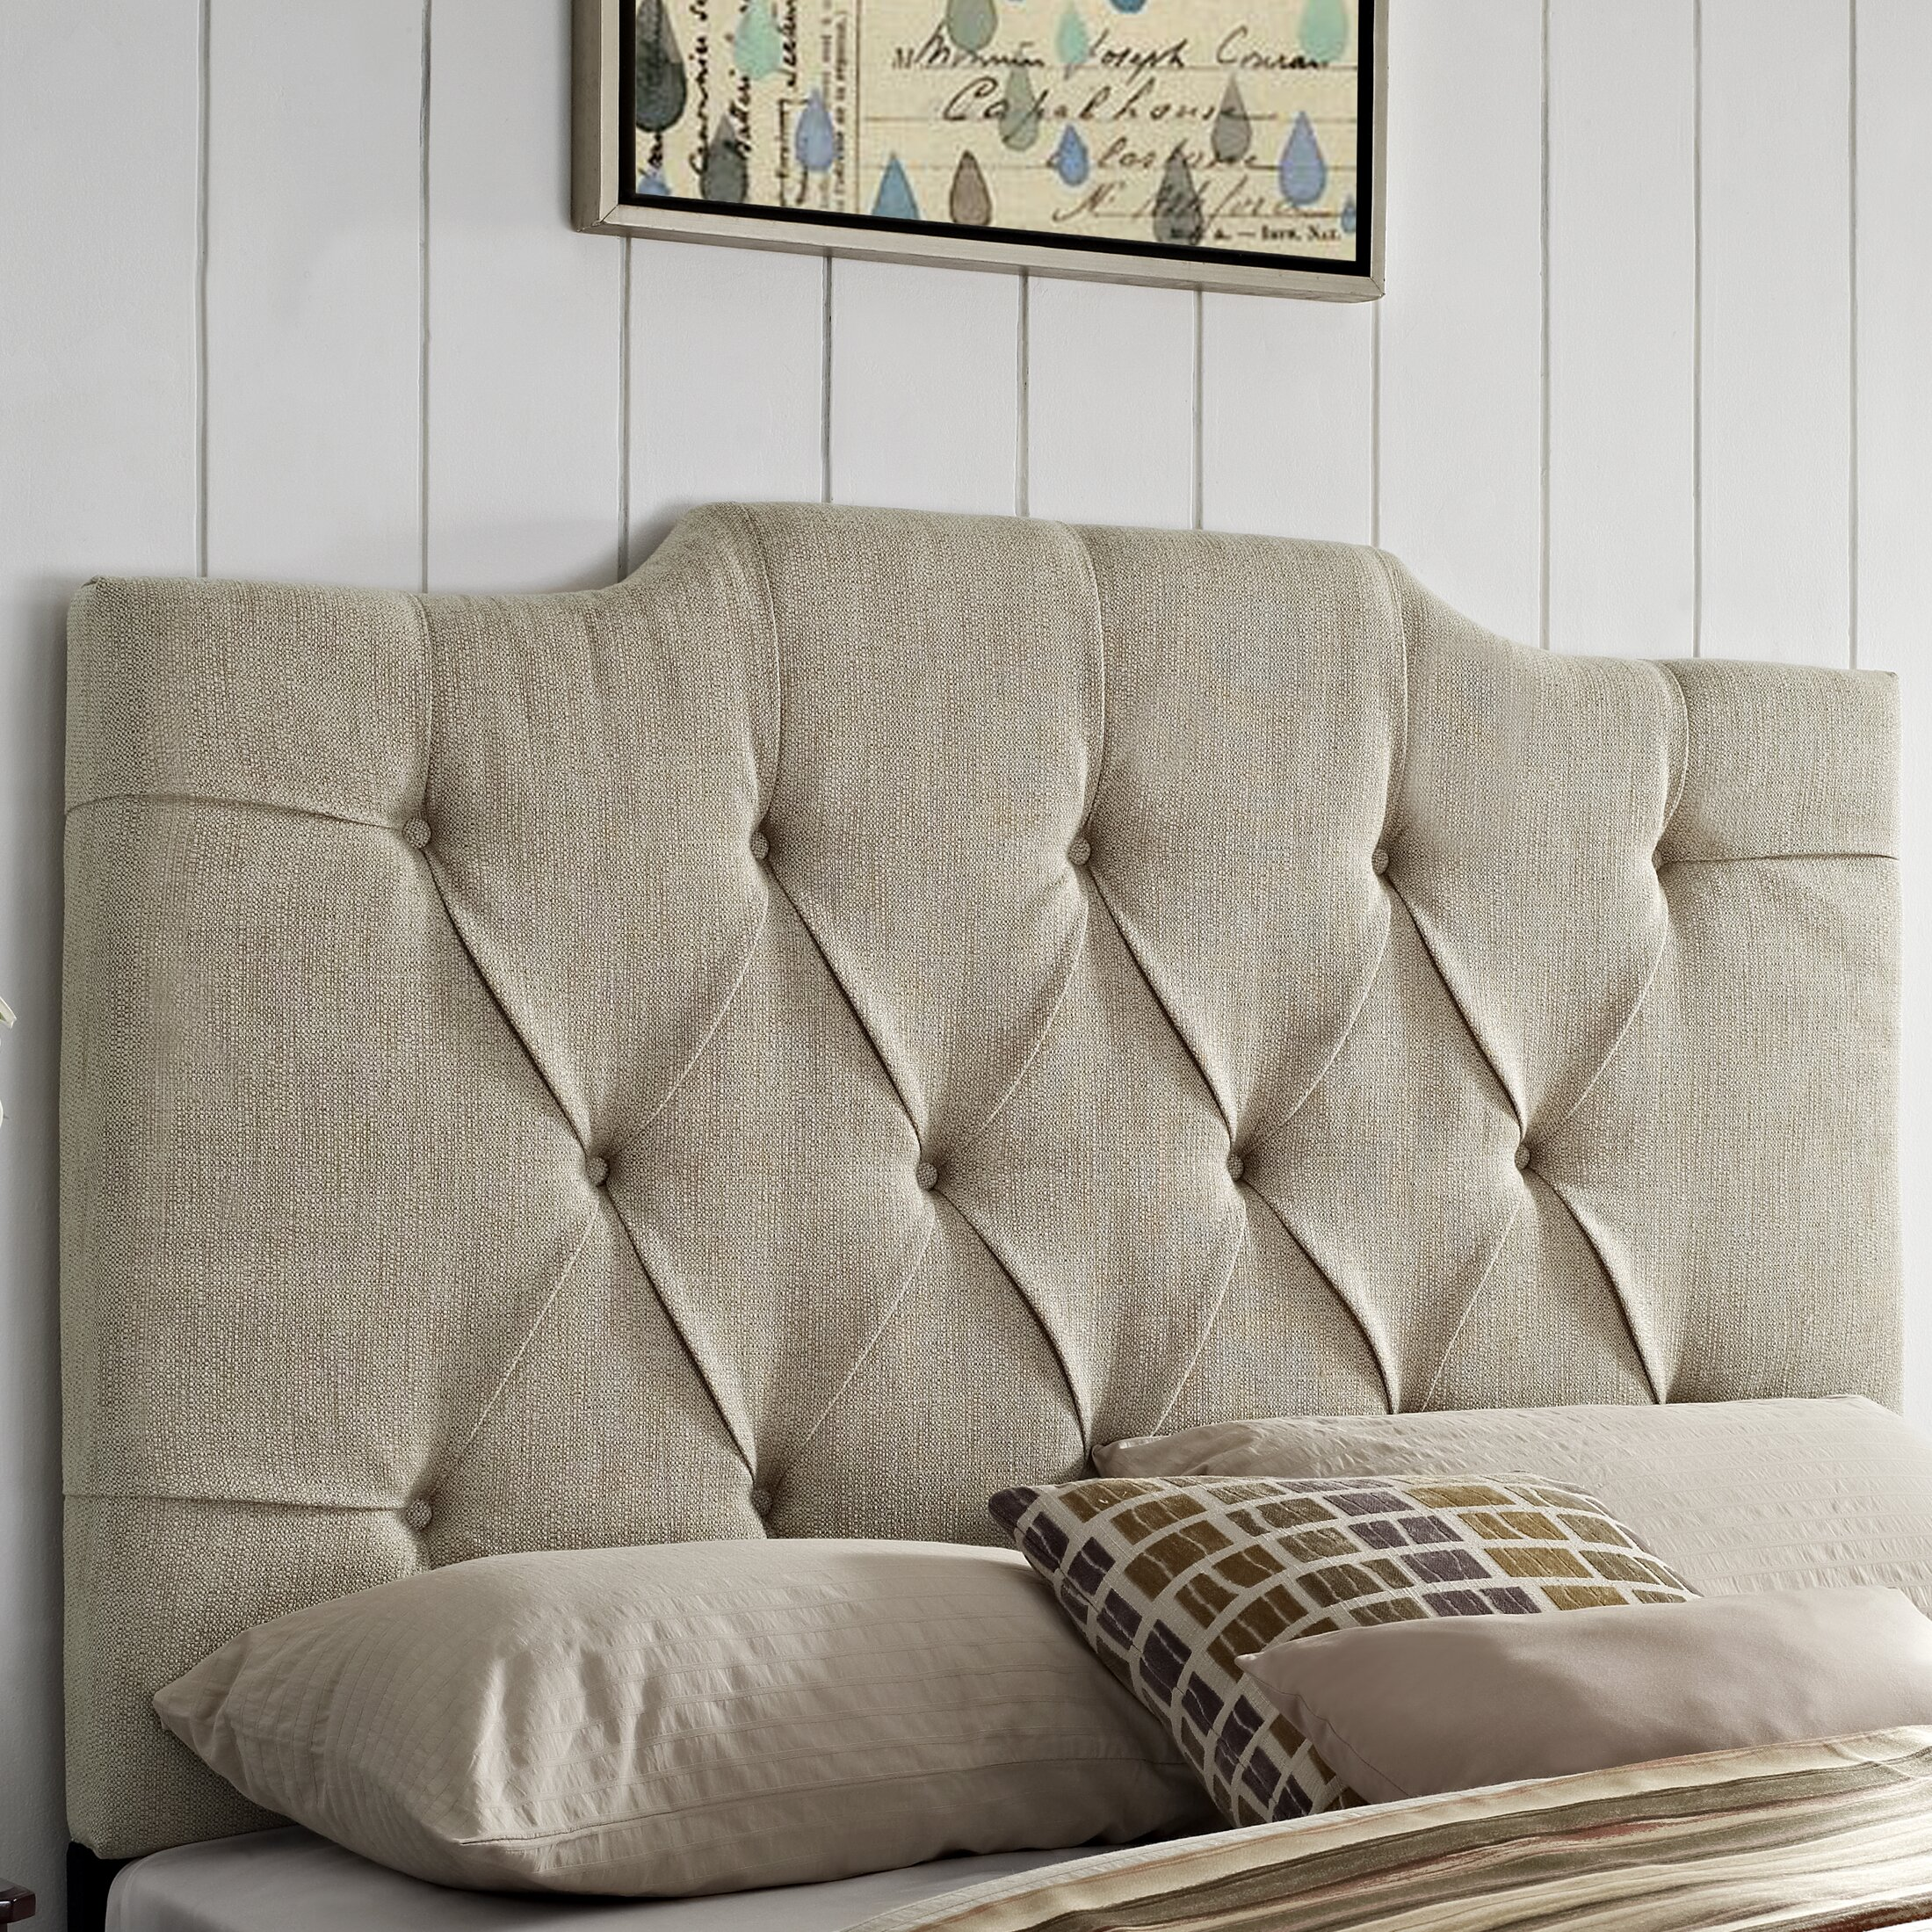 Warefair Com: Darby Home Co Martha Upholstered Panel Headboard & Reviews